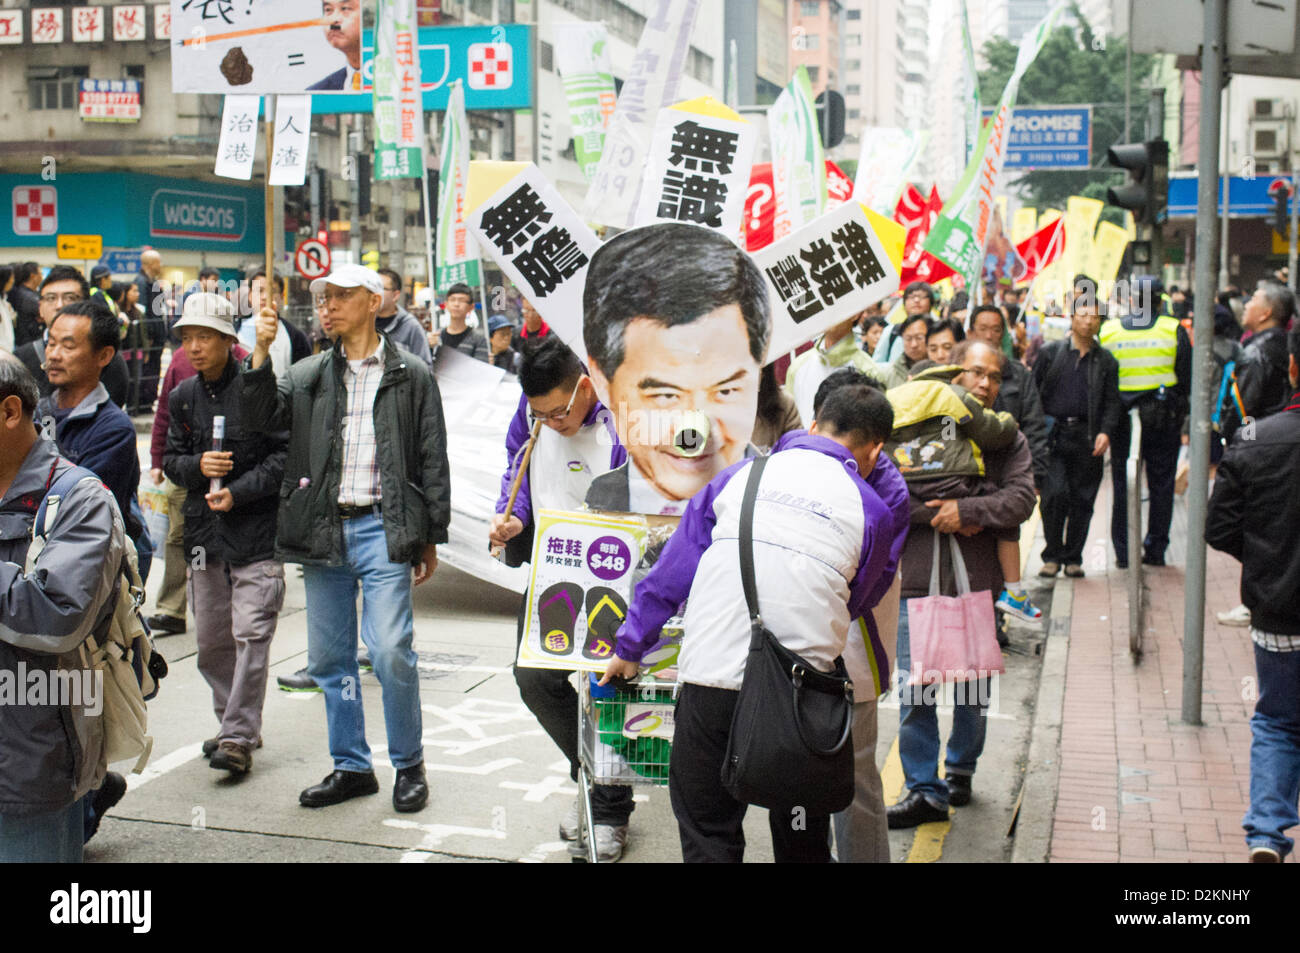 Hong Kong, China. 27th January 2013. People gather for march to protest against the city leader on Sunday, 27 Jan Stock Photo